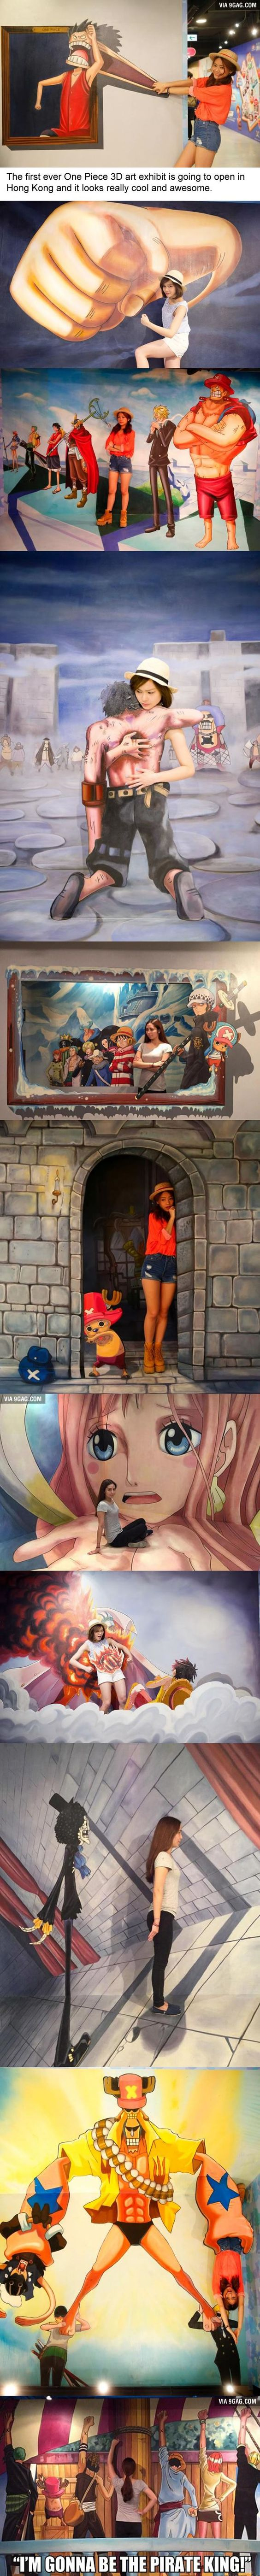 First One Piece 3D Art Exhibit Opens In Hong Kong!